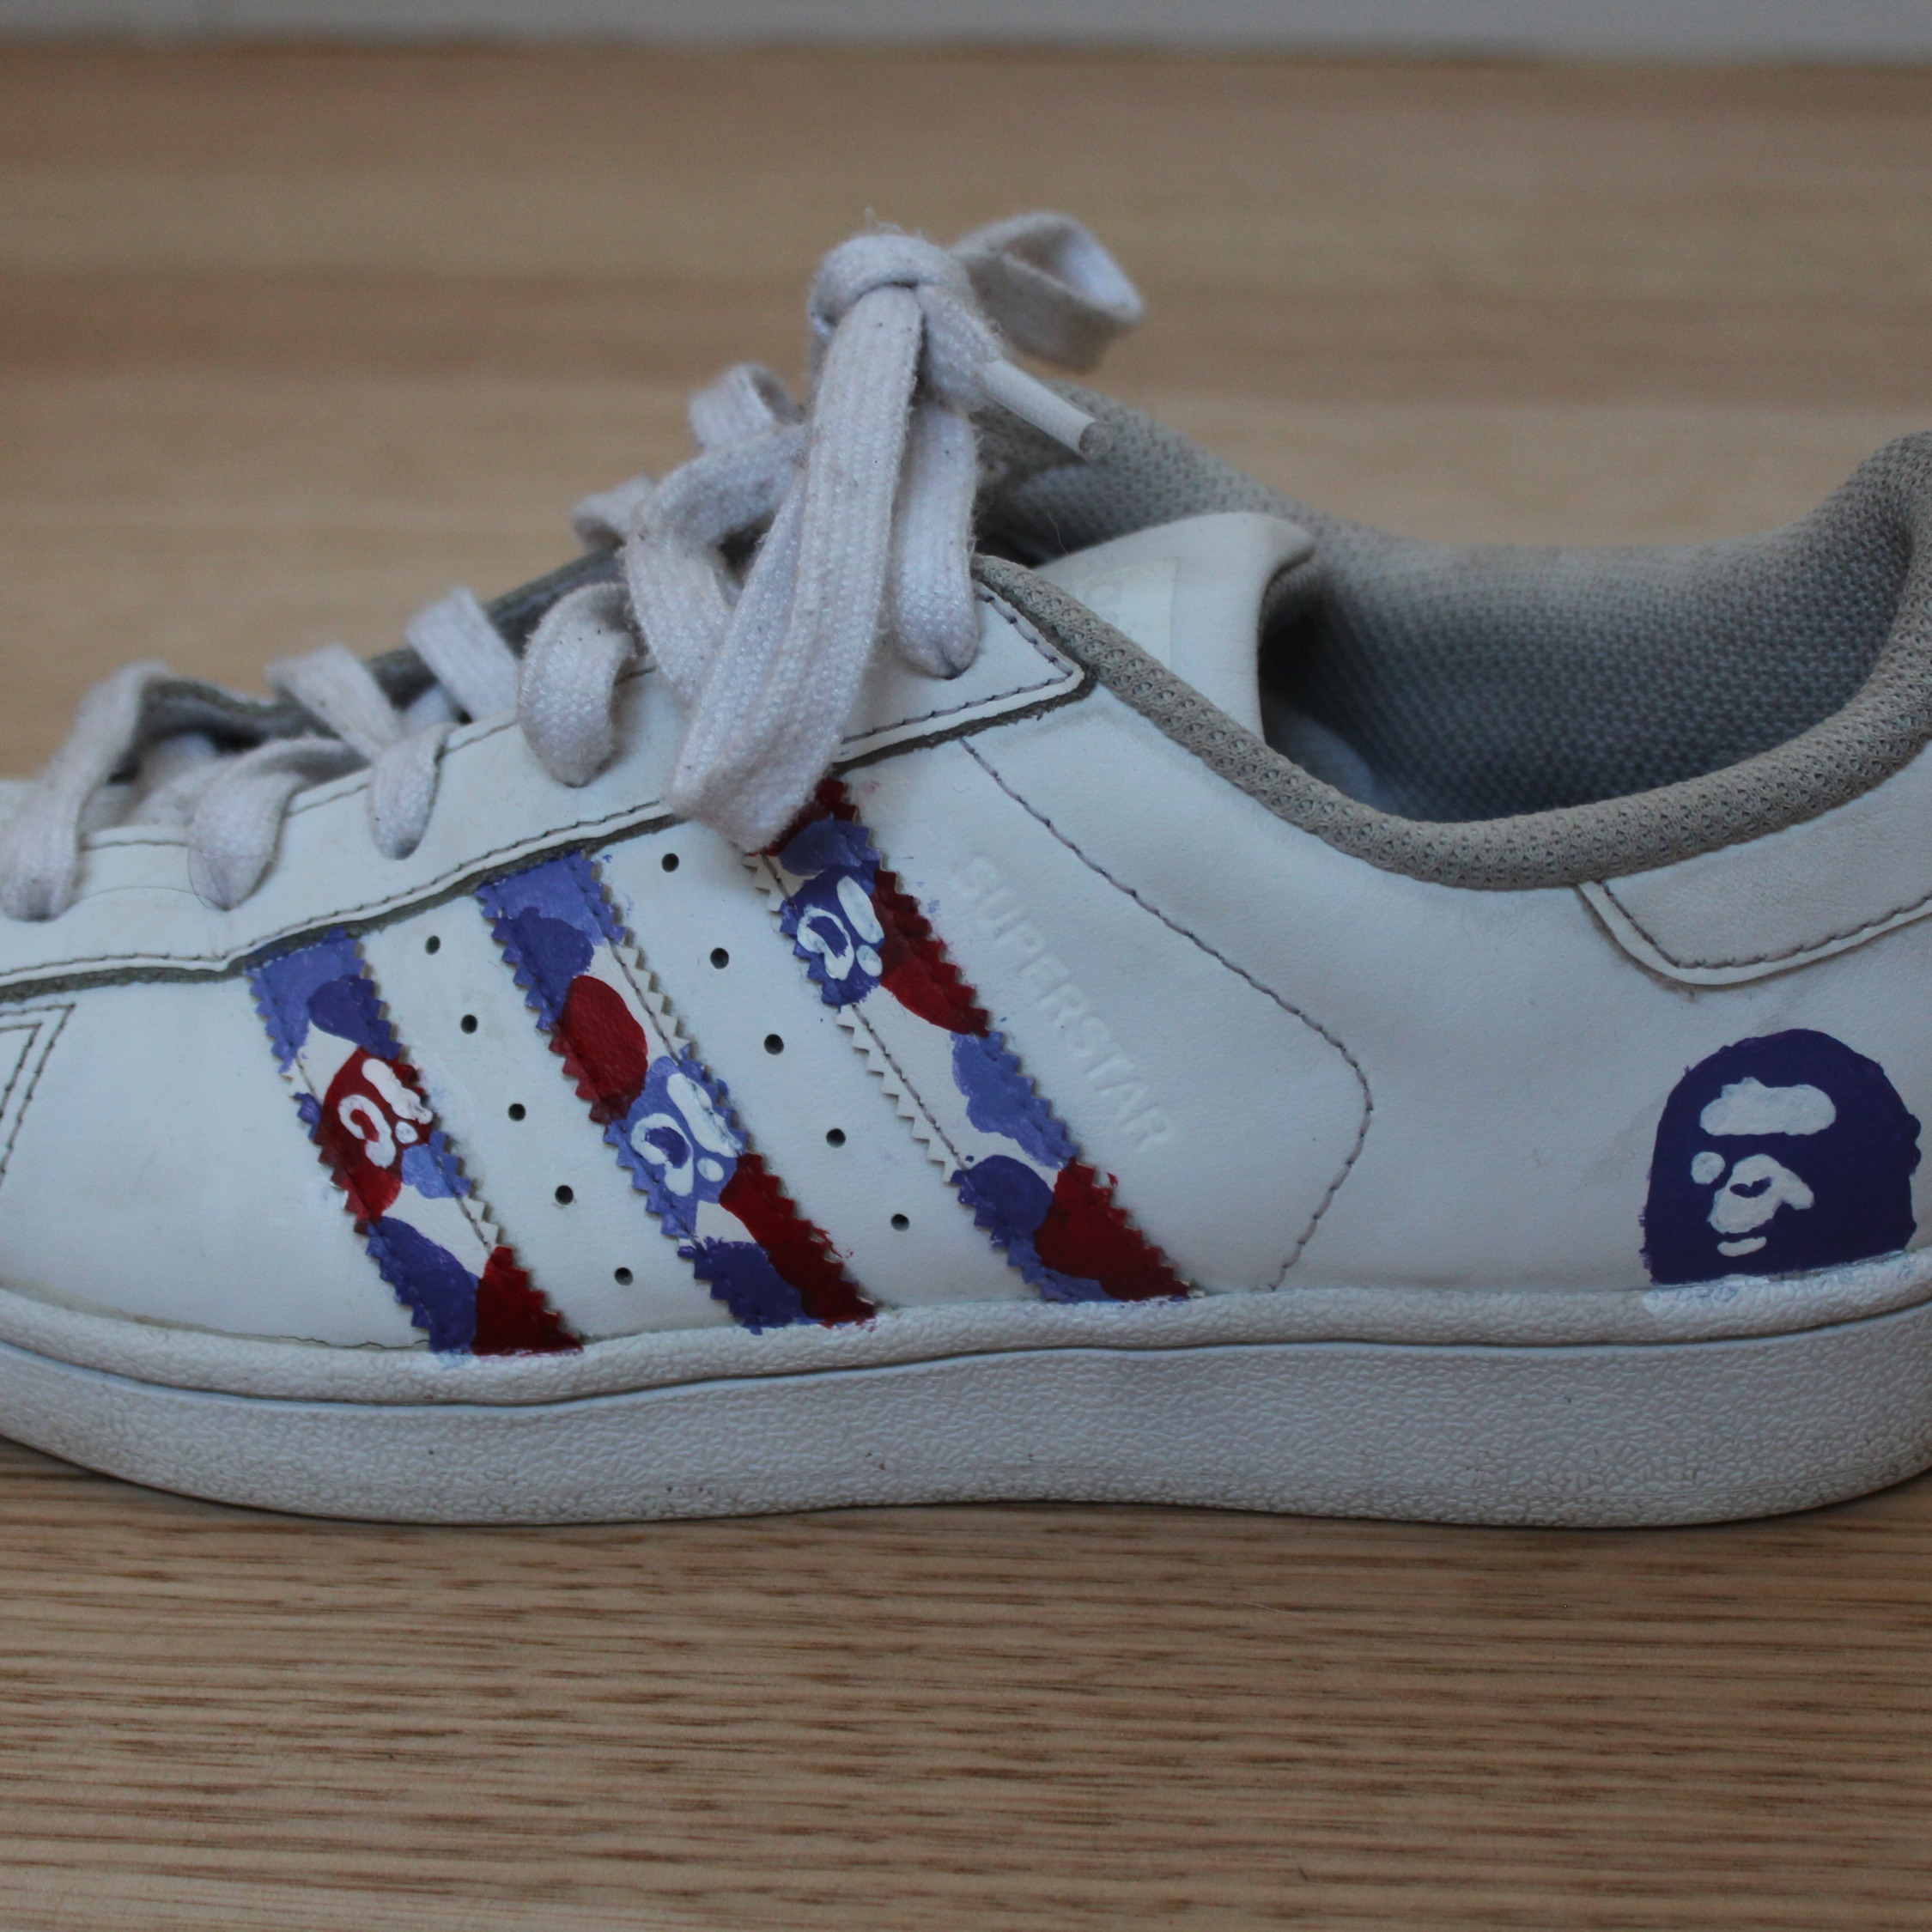 Verrassend Custom Bape Adidas Superstars LY-59